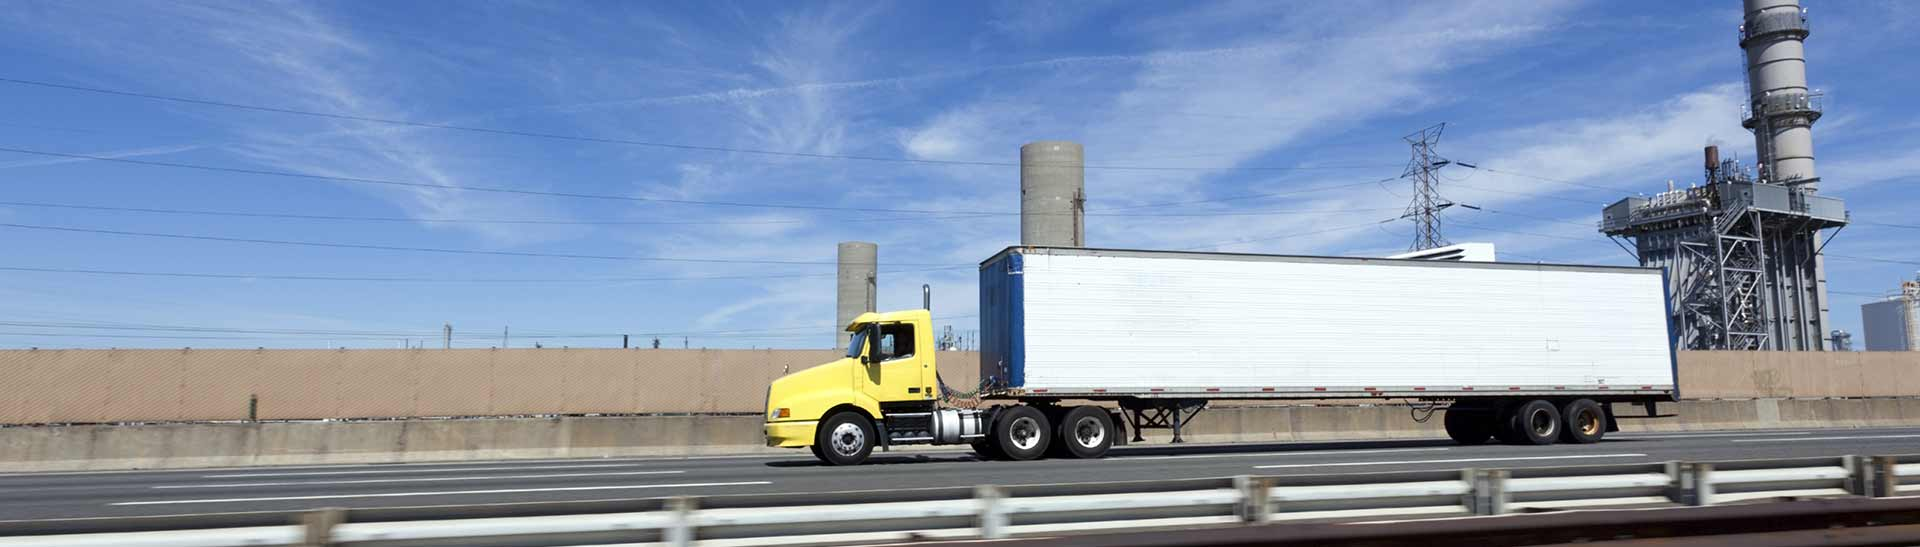 Rock Hill Trucking Company, Trucking Services and Freight Forwarding Services